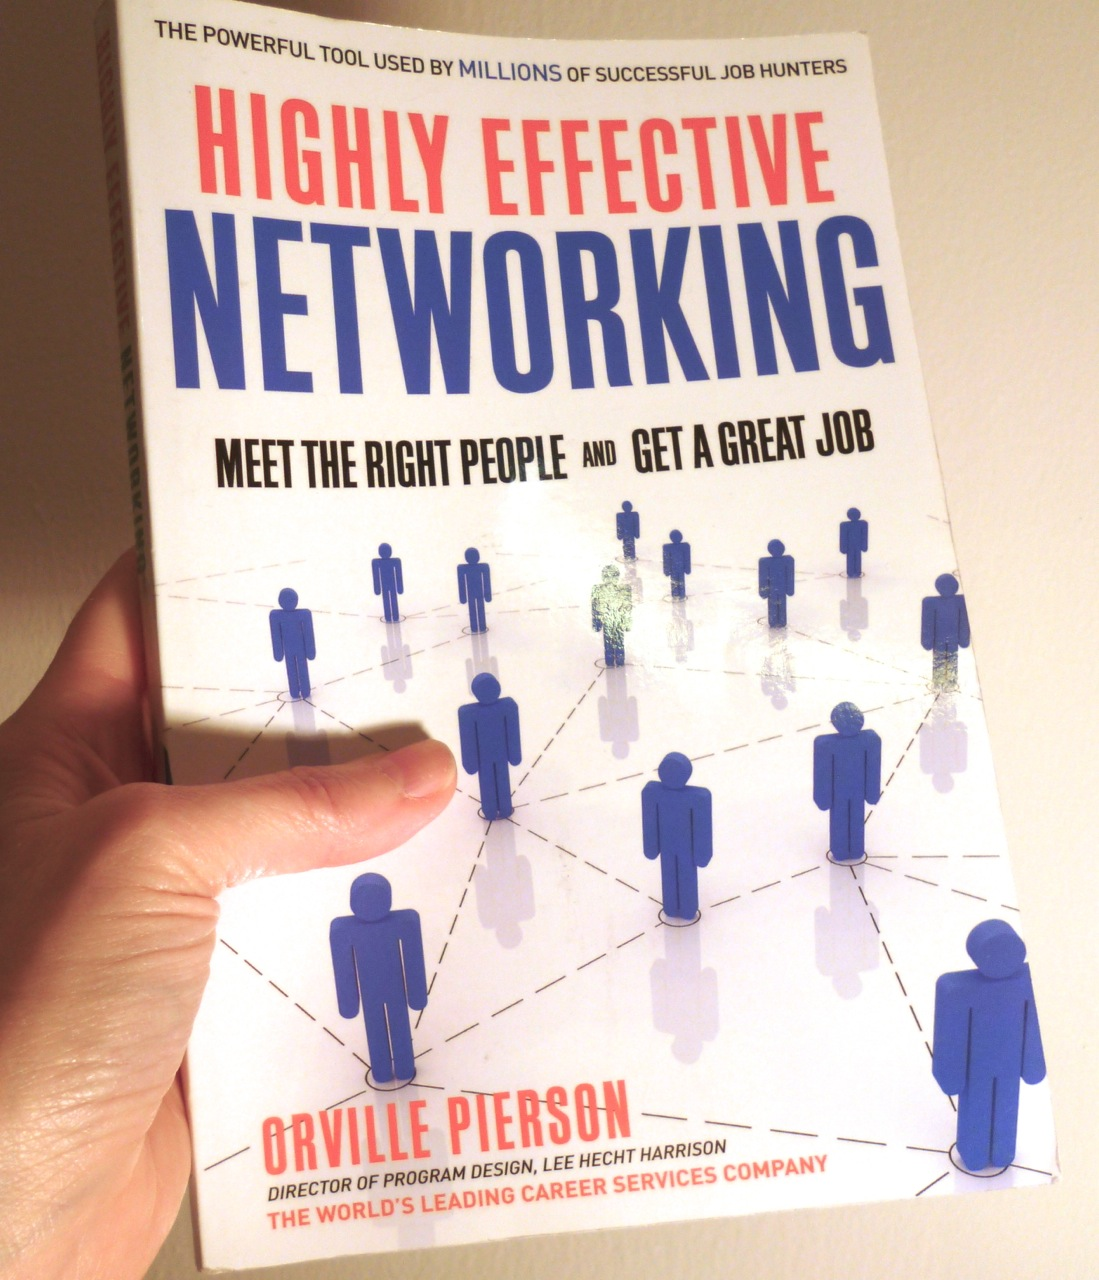 networking is not bothering your friends